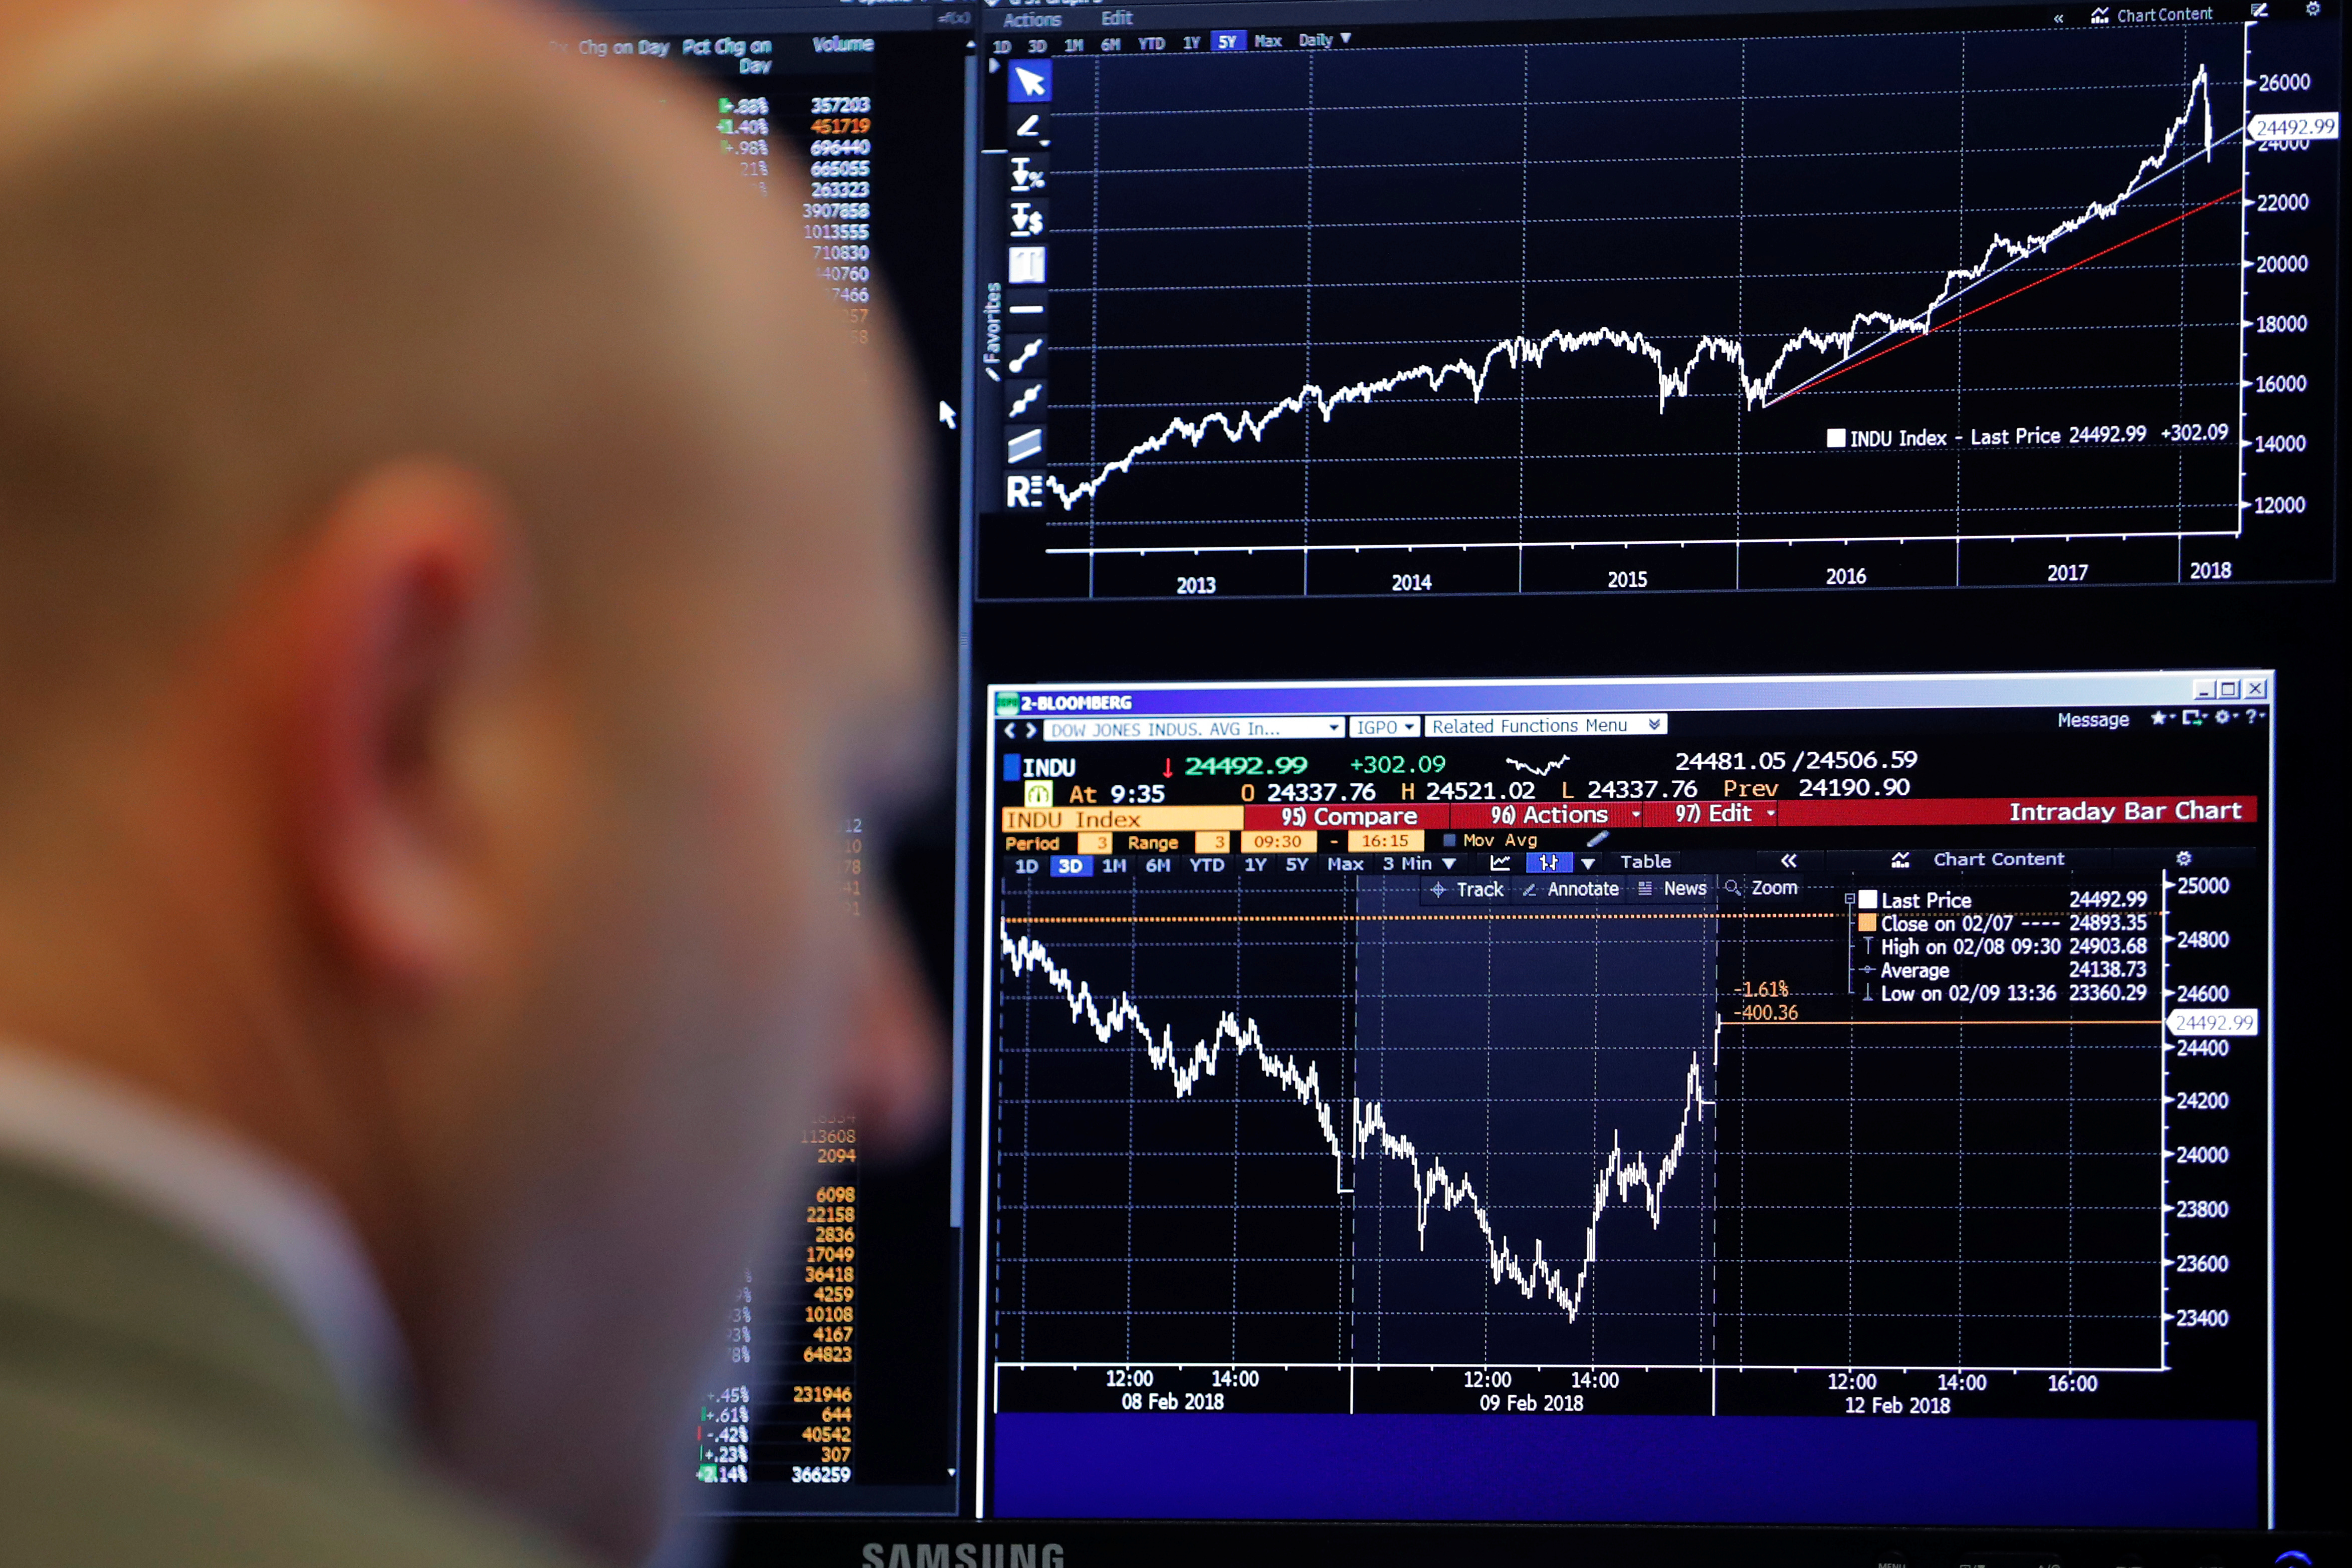 What do stock market fluctuations mean for the economy?